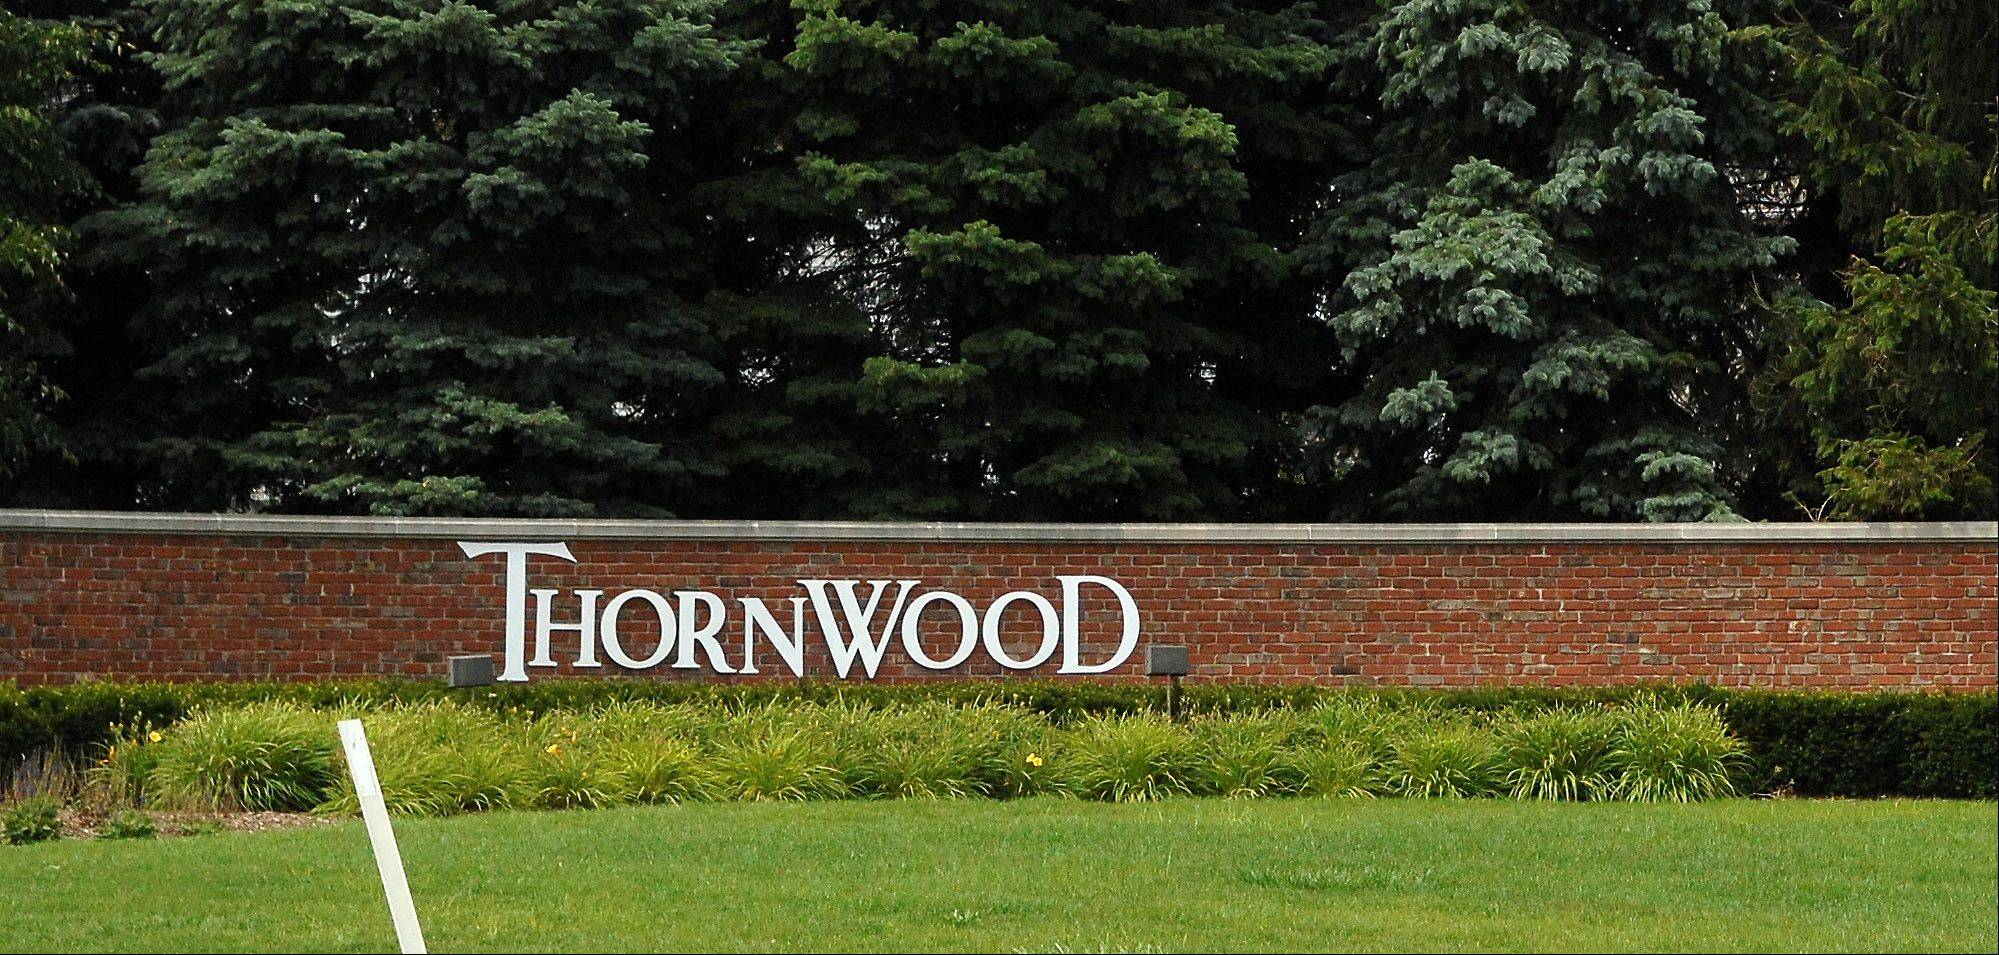 South Elgin officials want to abolish the Otter Creek Water Reclamation District that serves nearly 1,500 homes in the Thornwood neighborhood.